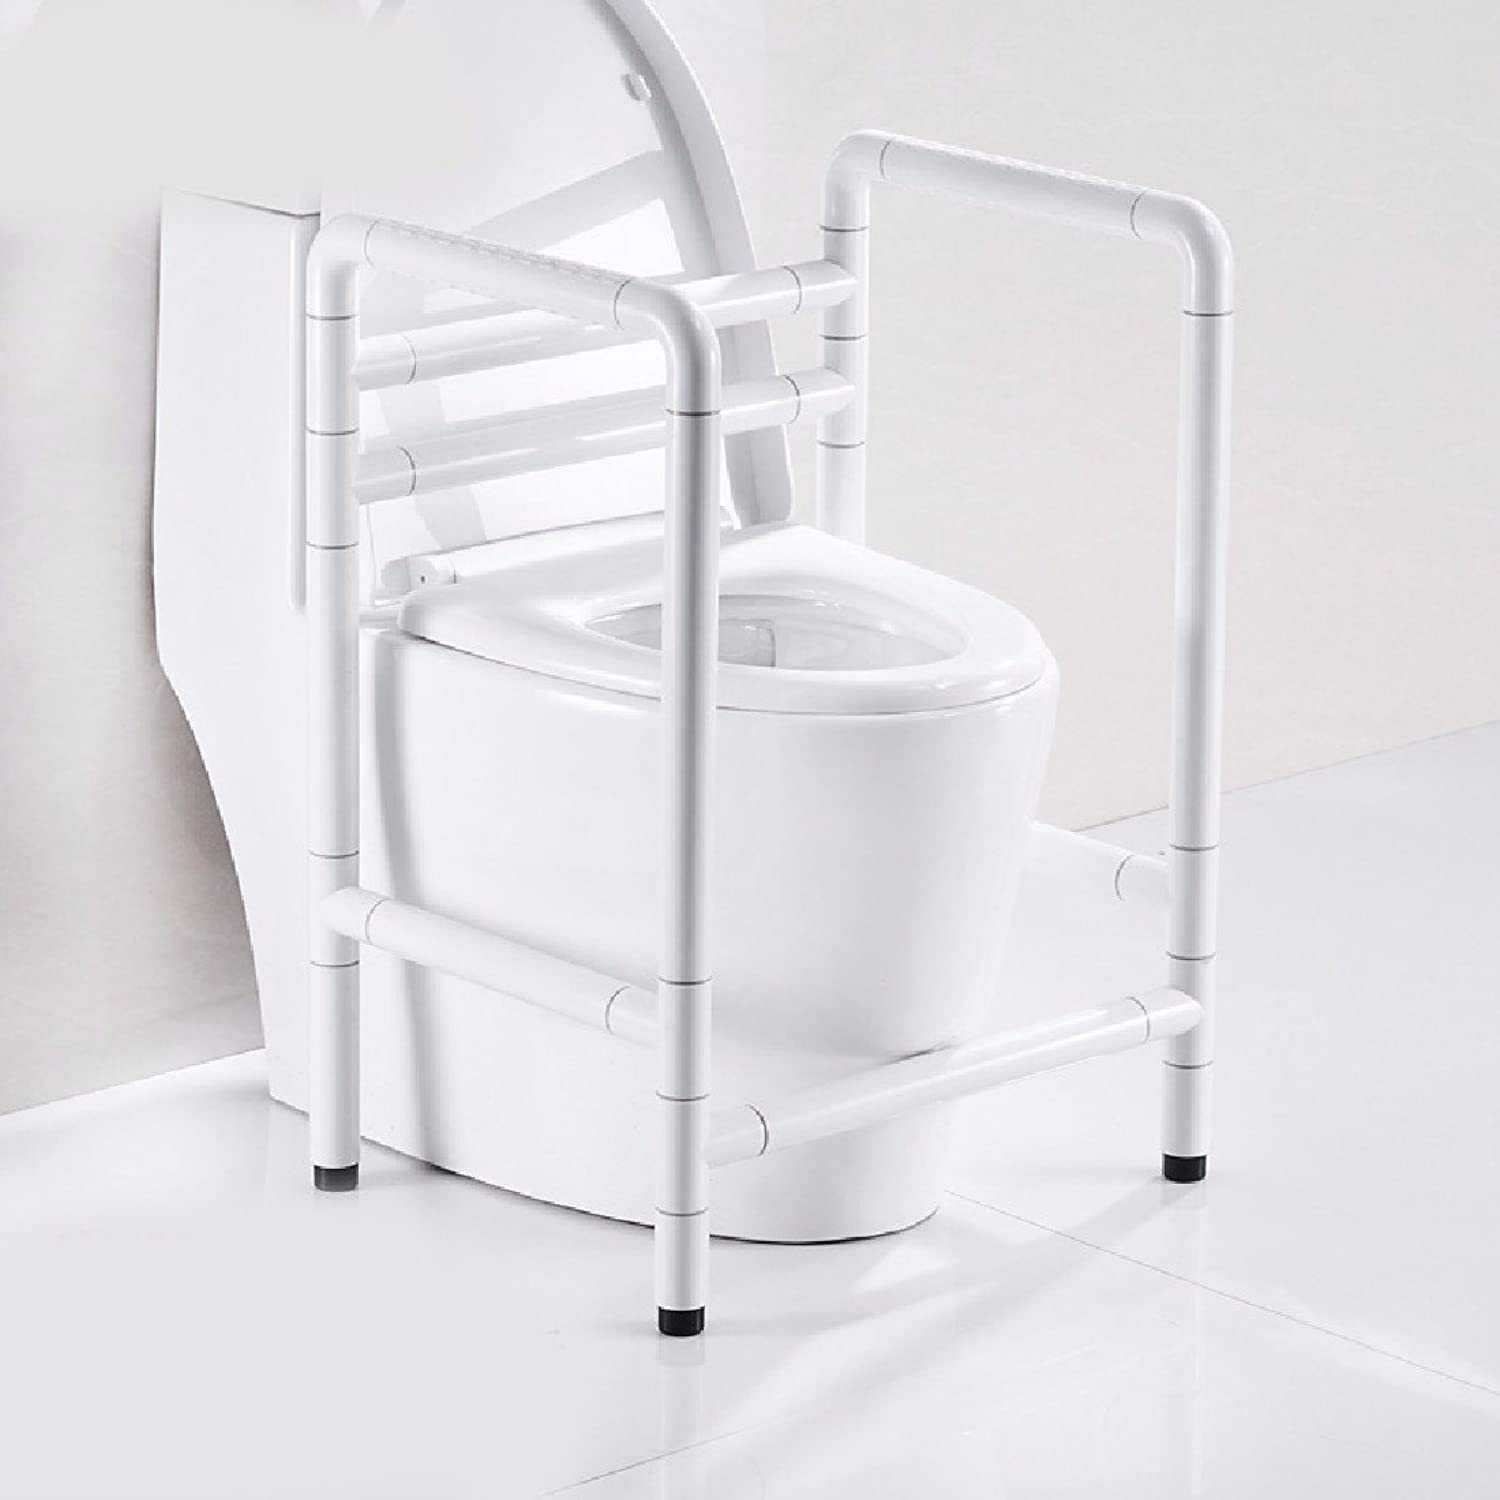 WAWZJ Handrail Toilets Booster Shelves Stainless Steel Safety Pregnant Women with Disabilities Starting from The Toilet Handrails,White